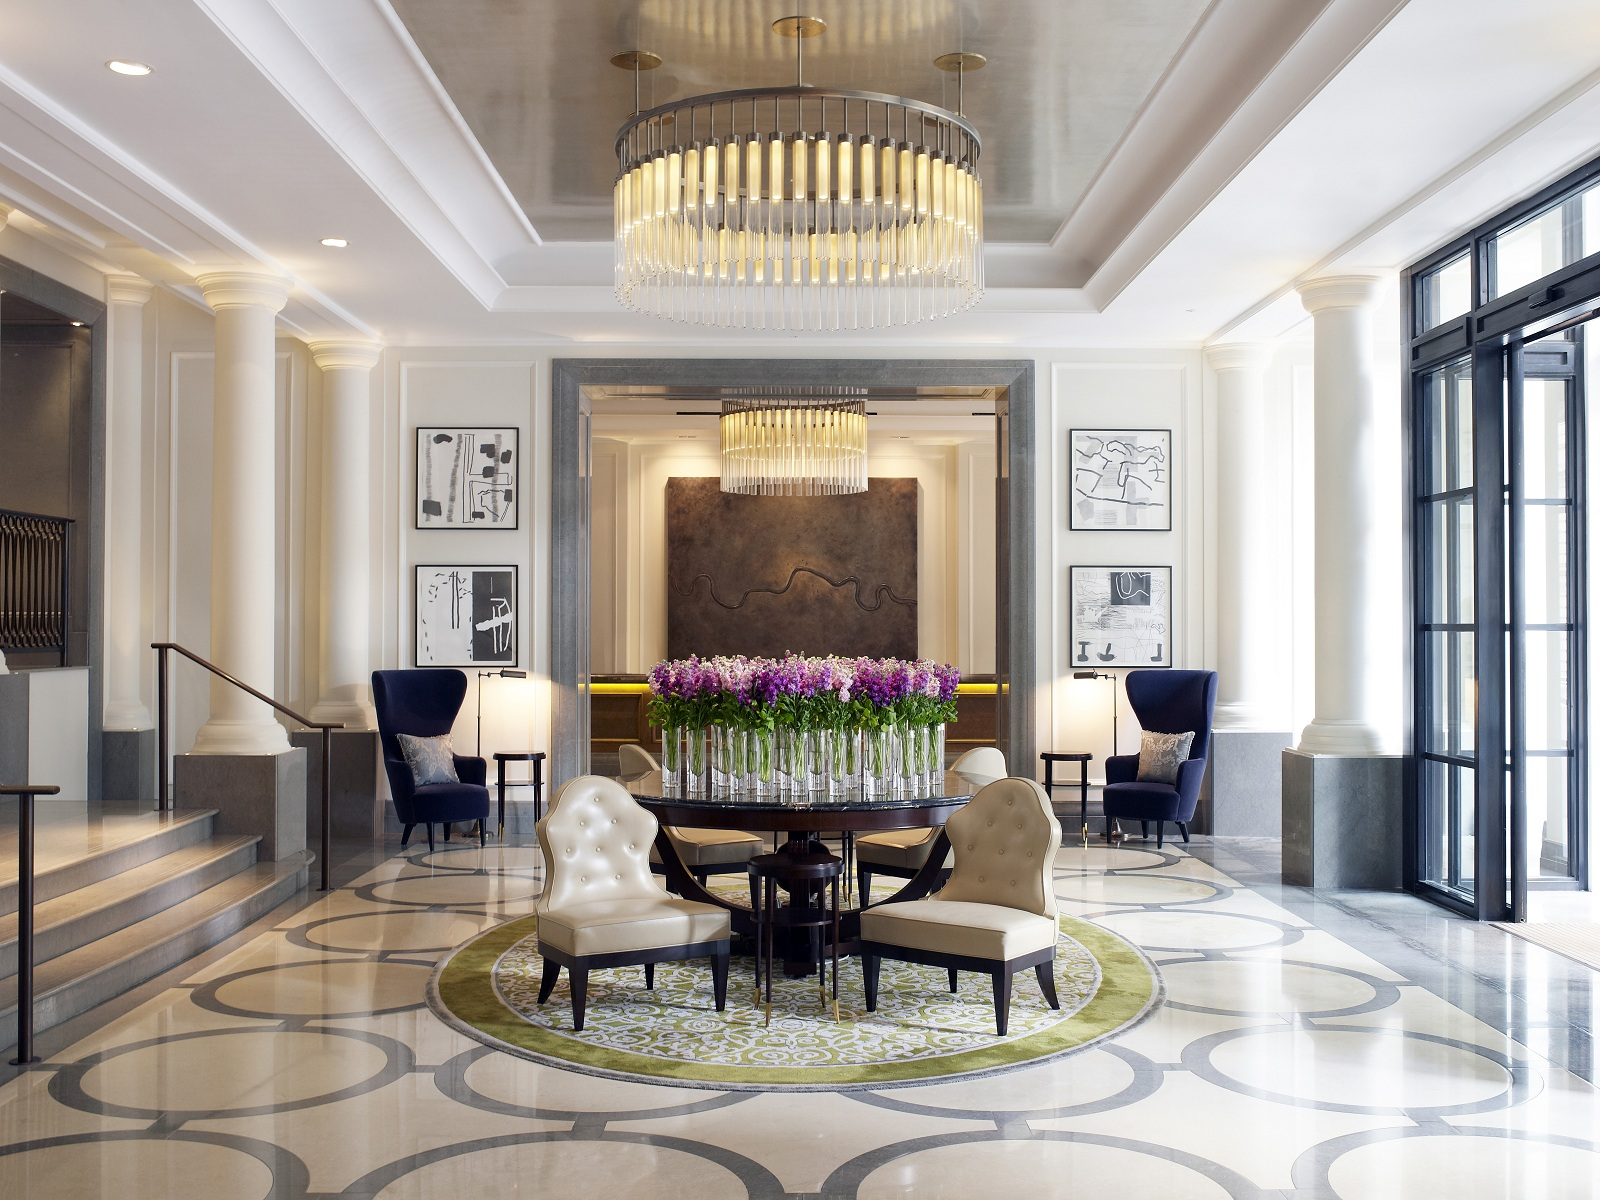 best new hotel london uk corinthia hotel entrance lobby